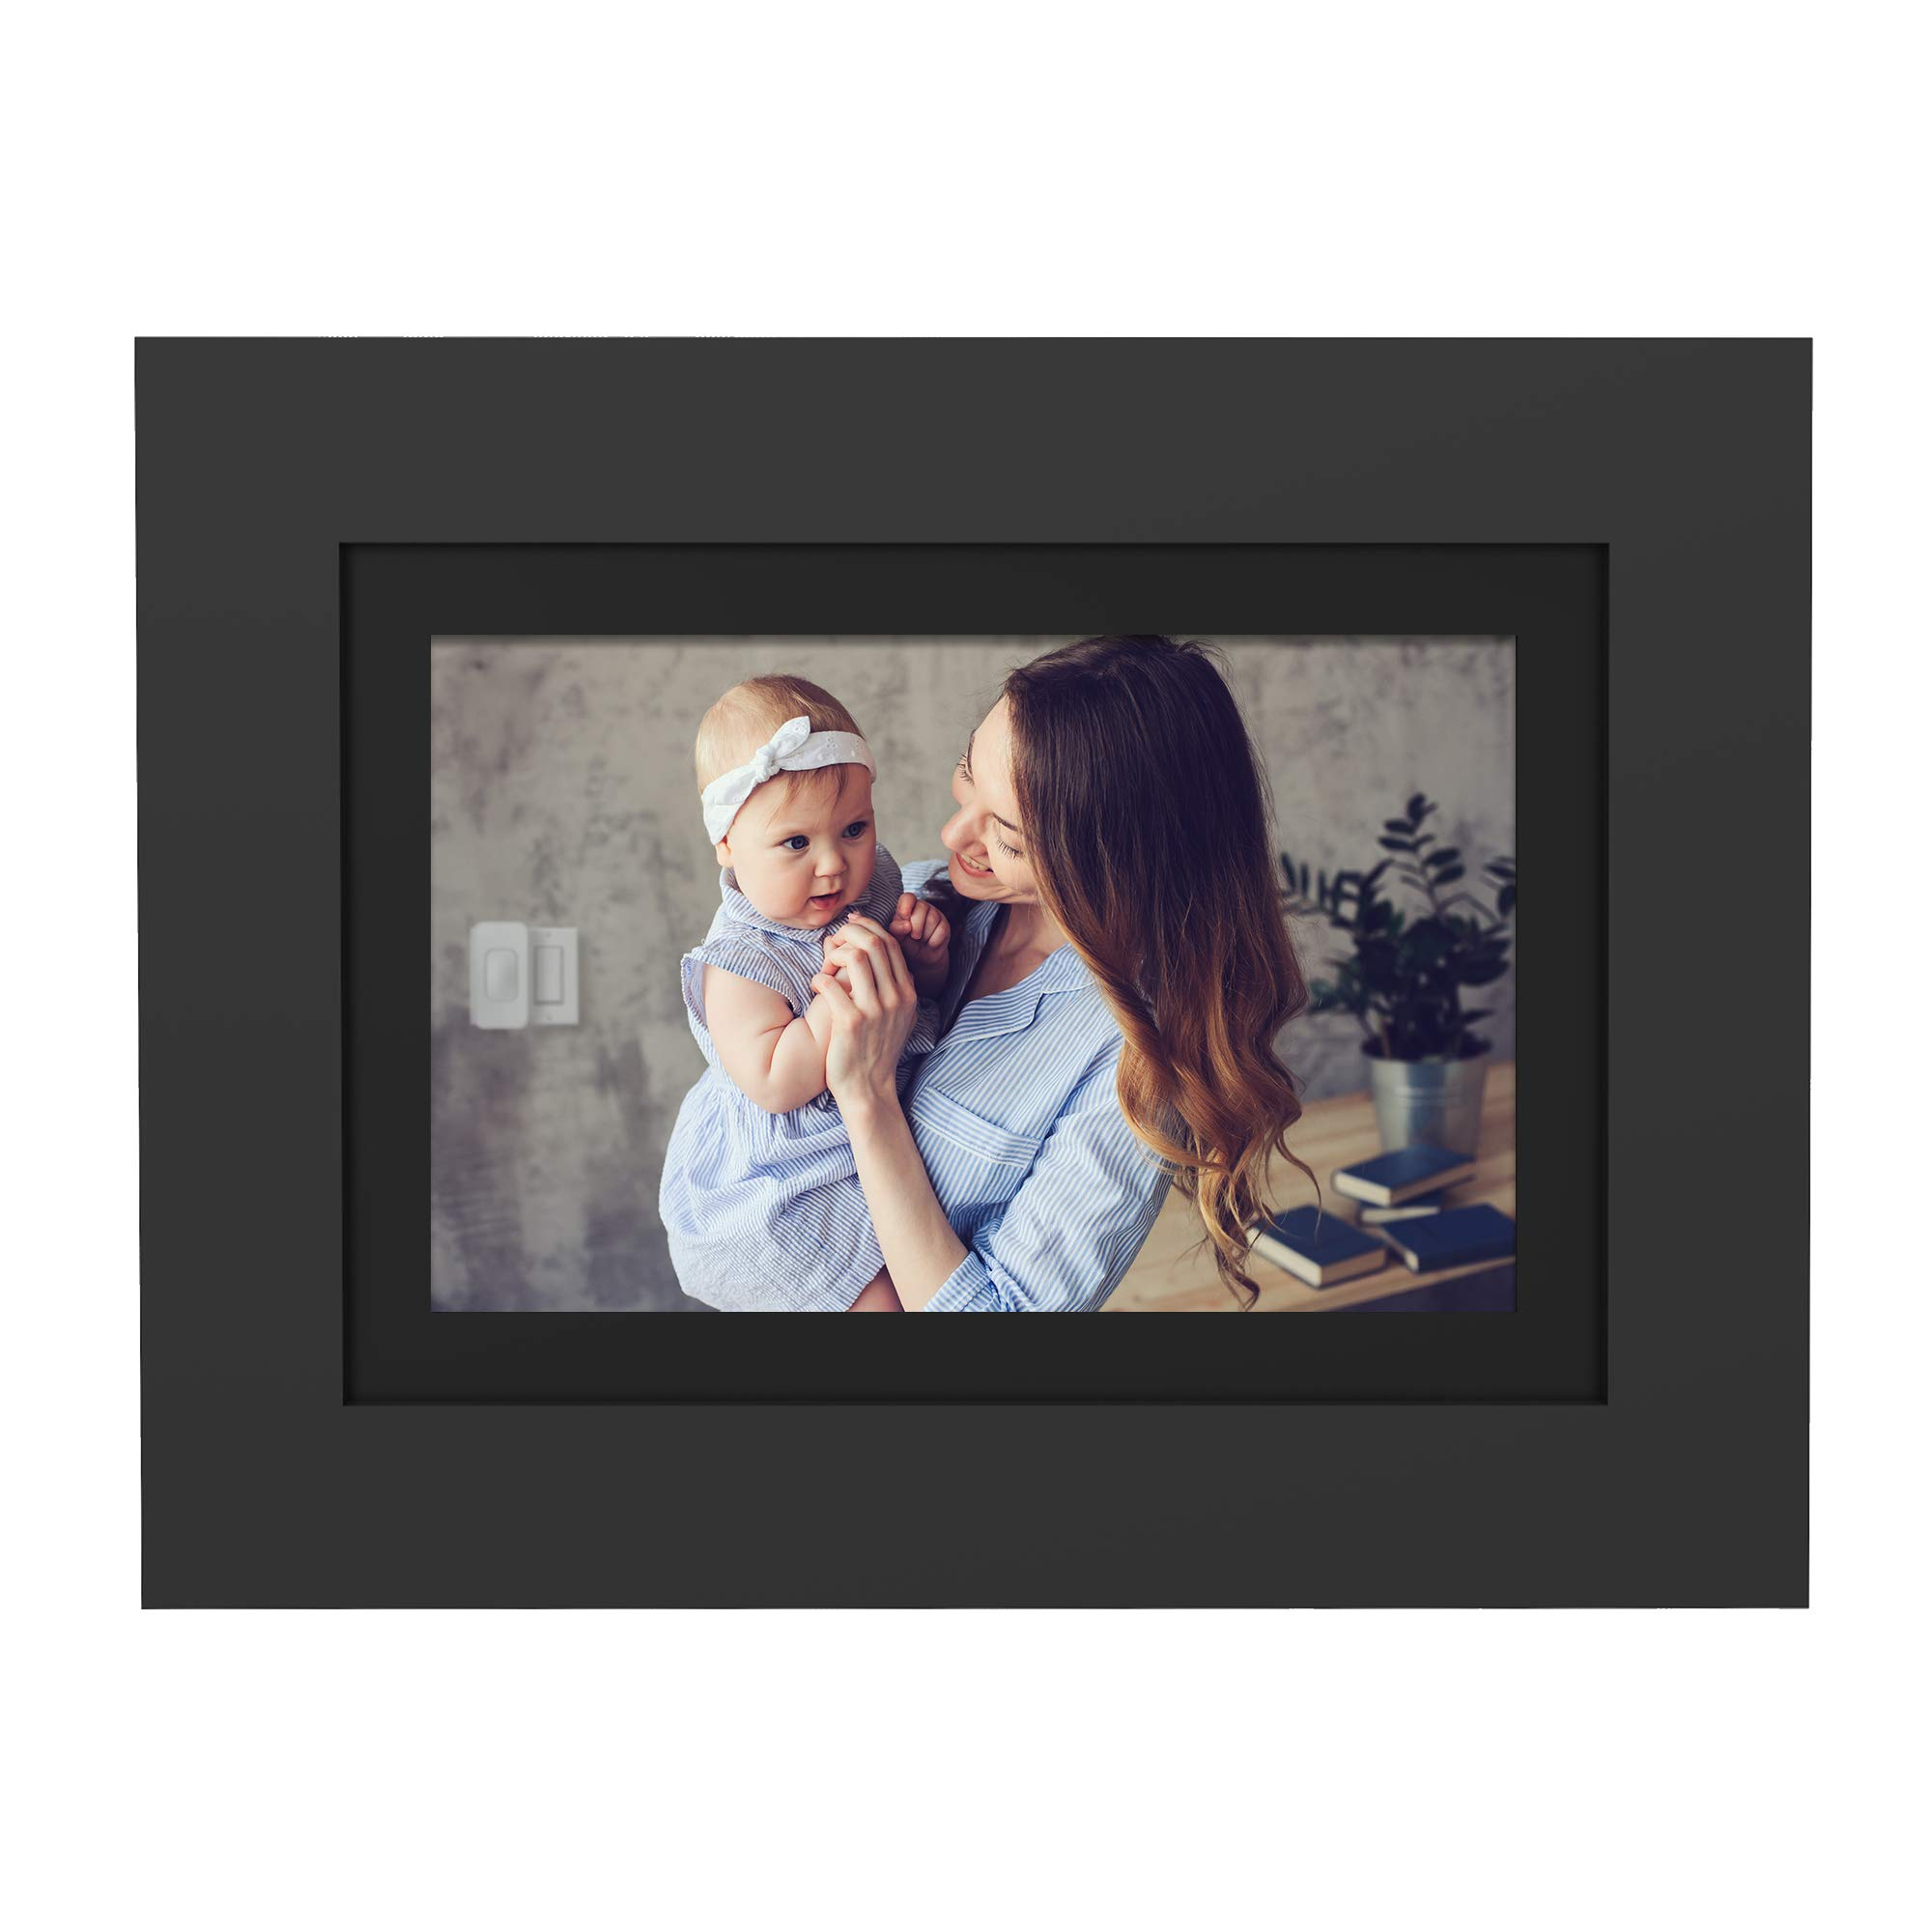 SimplySmart Home PhotoShare Social Network Frame 8'', Send Pics from Phone to Frame, Wi-Fi, Cloud, Digital Picture Frame, Holds Over 1,000 Photos, HD, 1080P, Black/White Mats